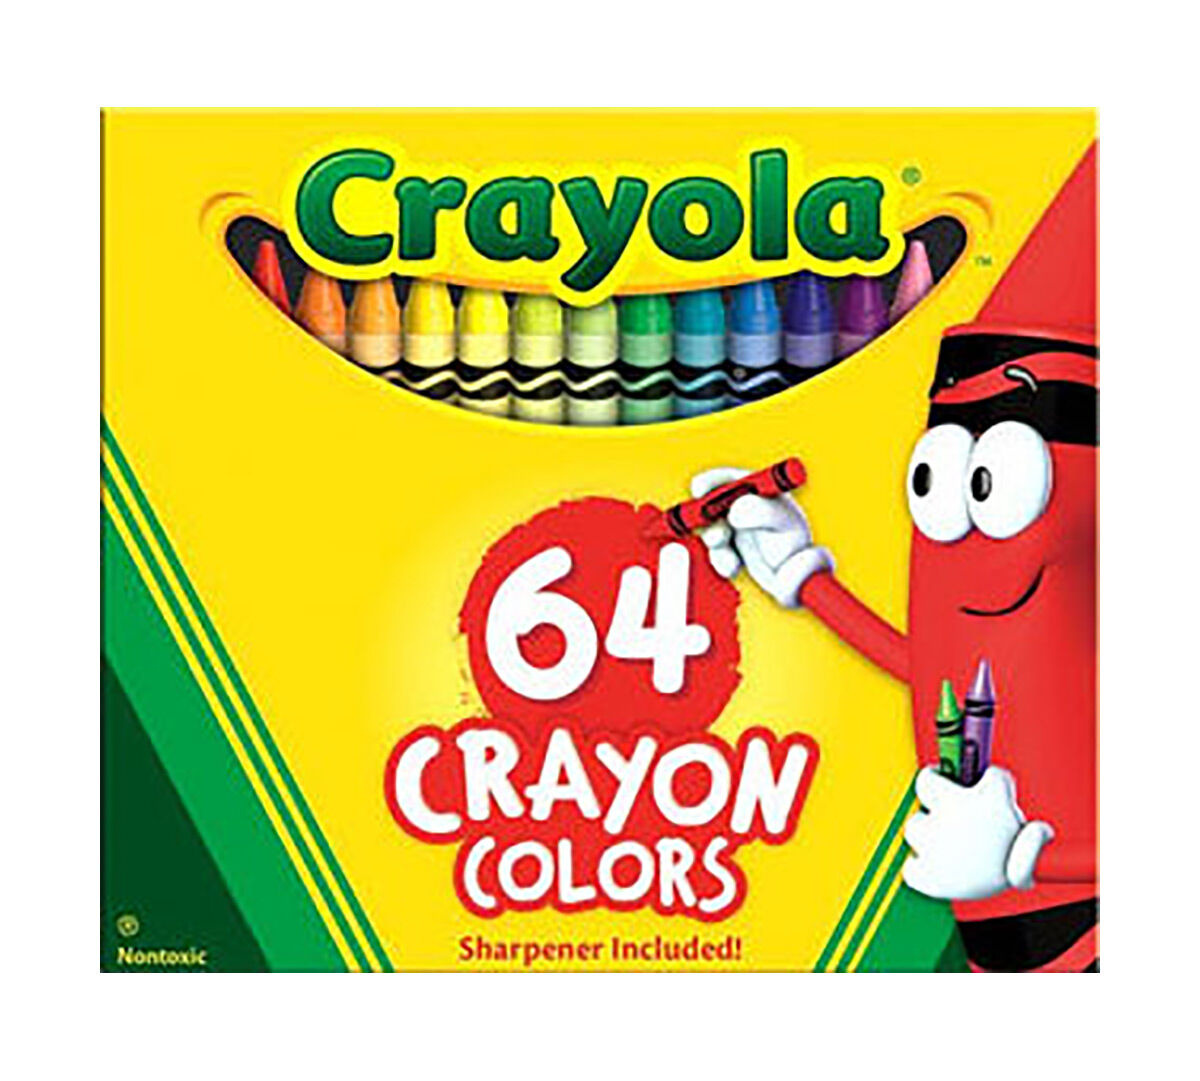 Image result for crayola crayon box pictures